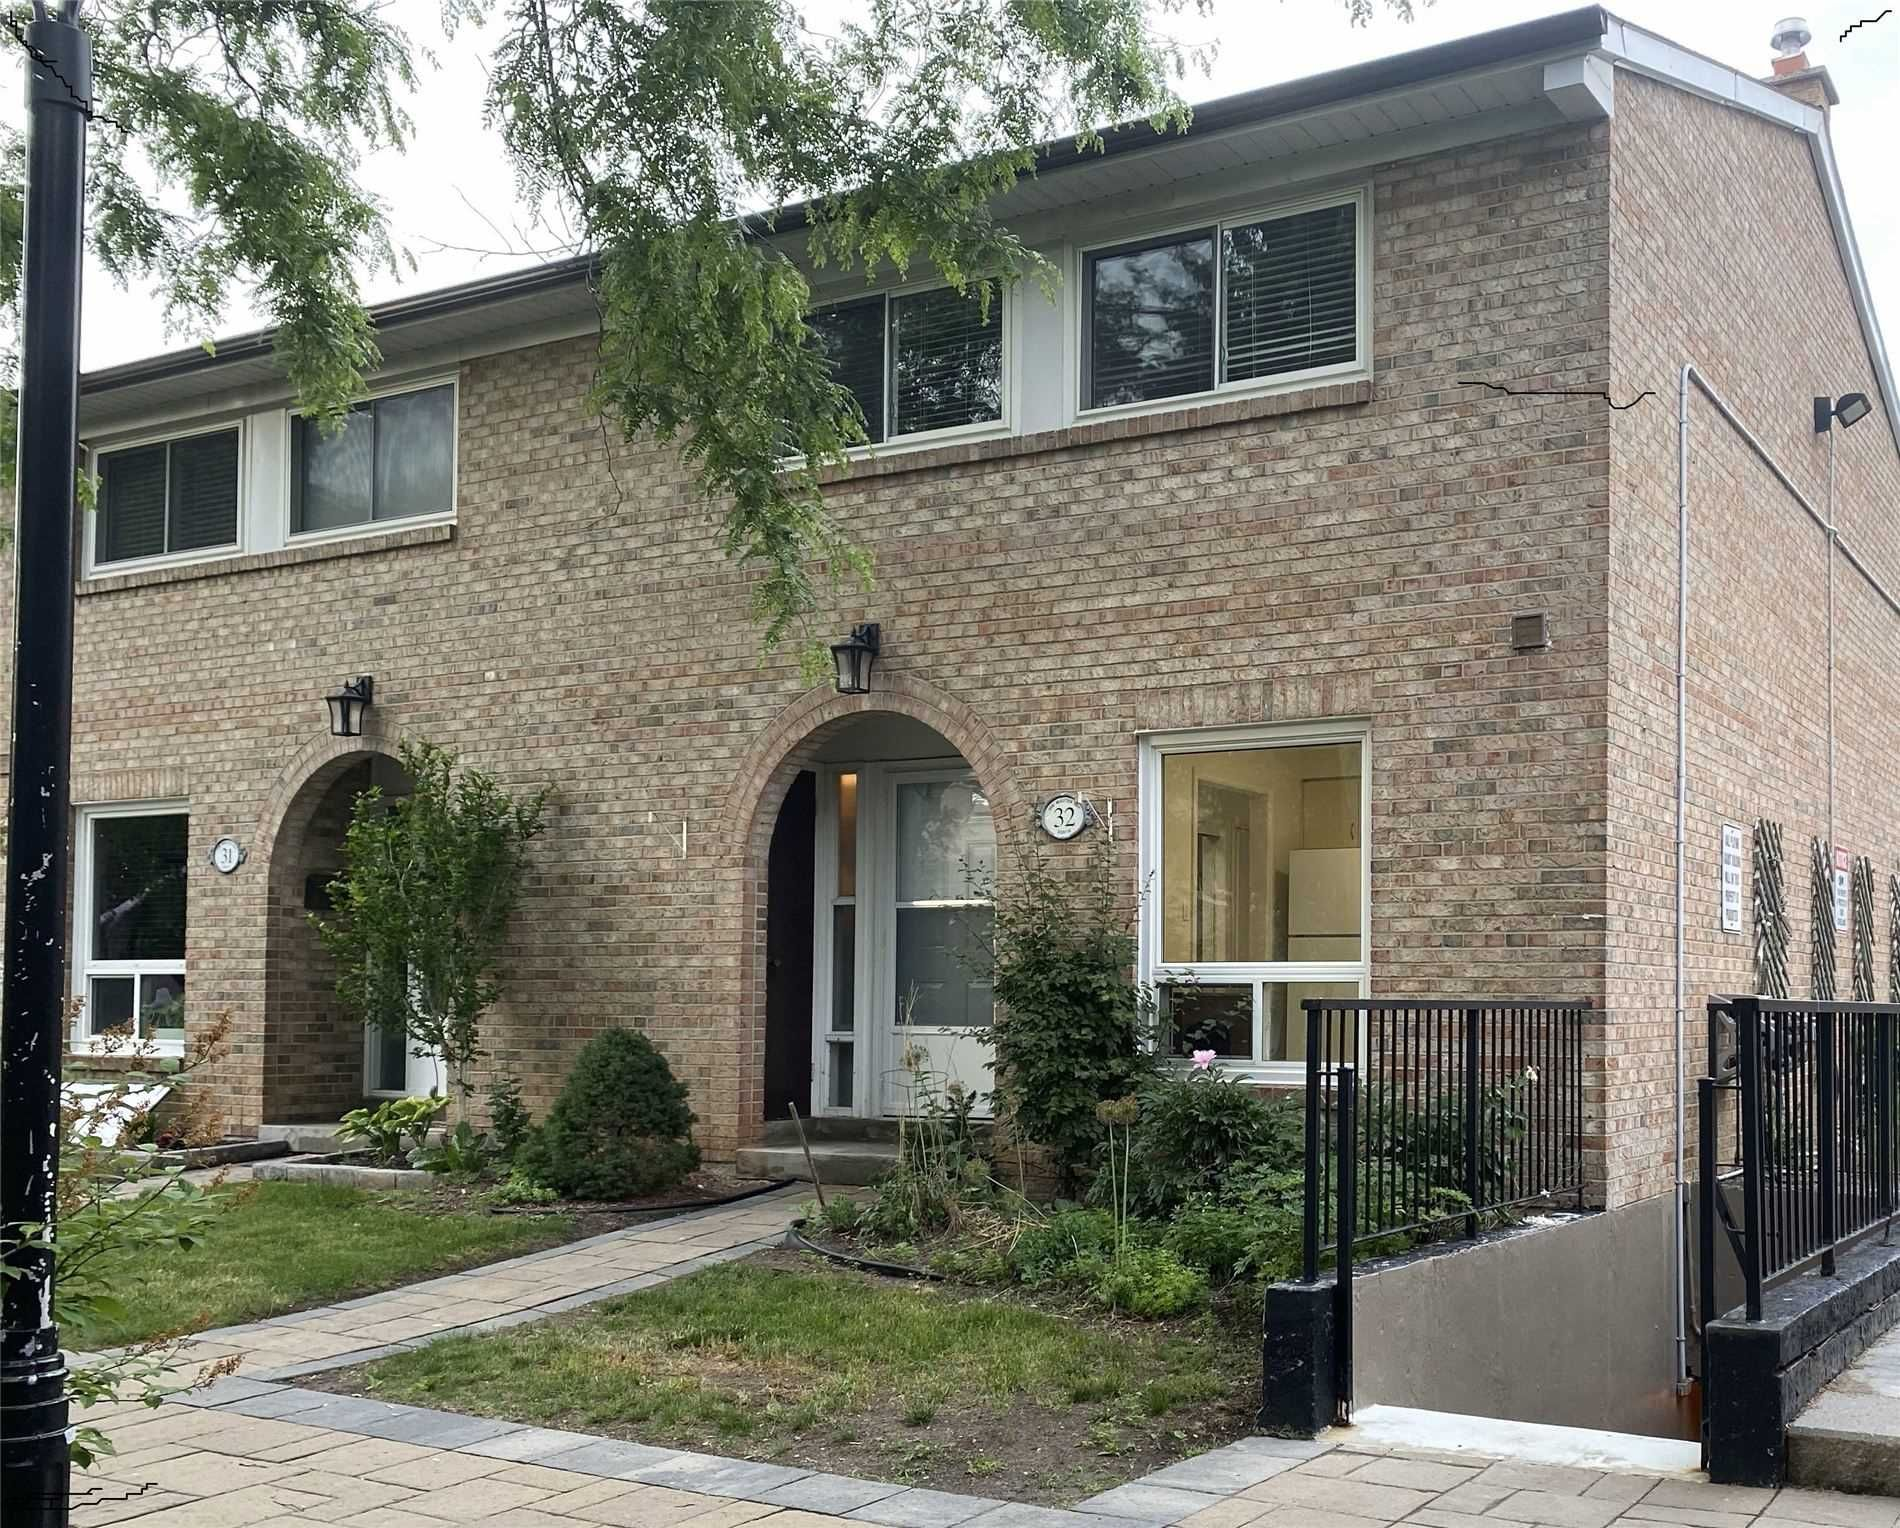 1 Wootten Way S, unit 32 for sale in Toronto - image #1